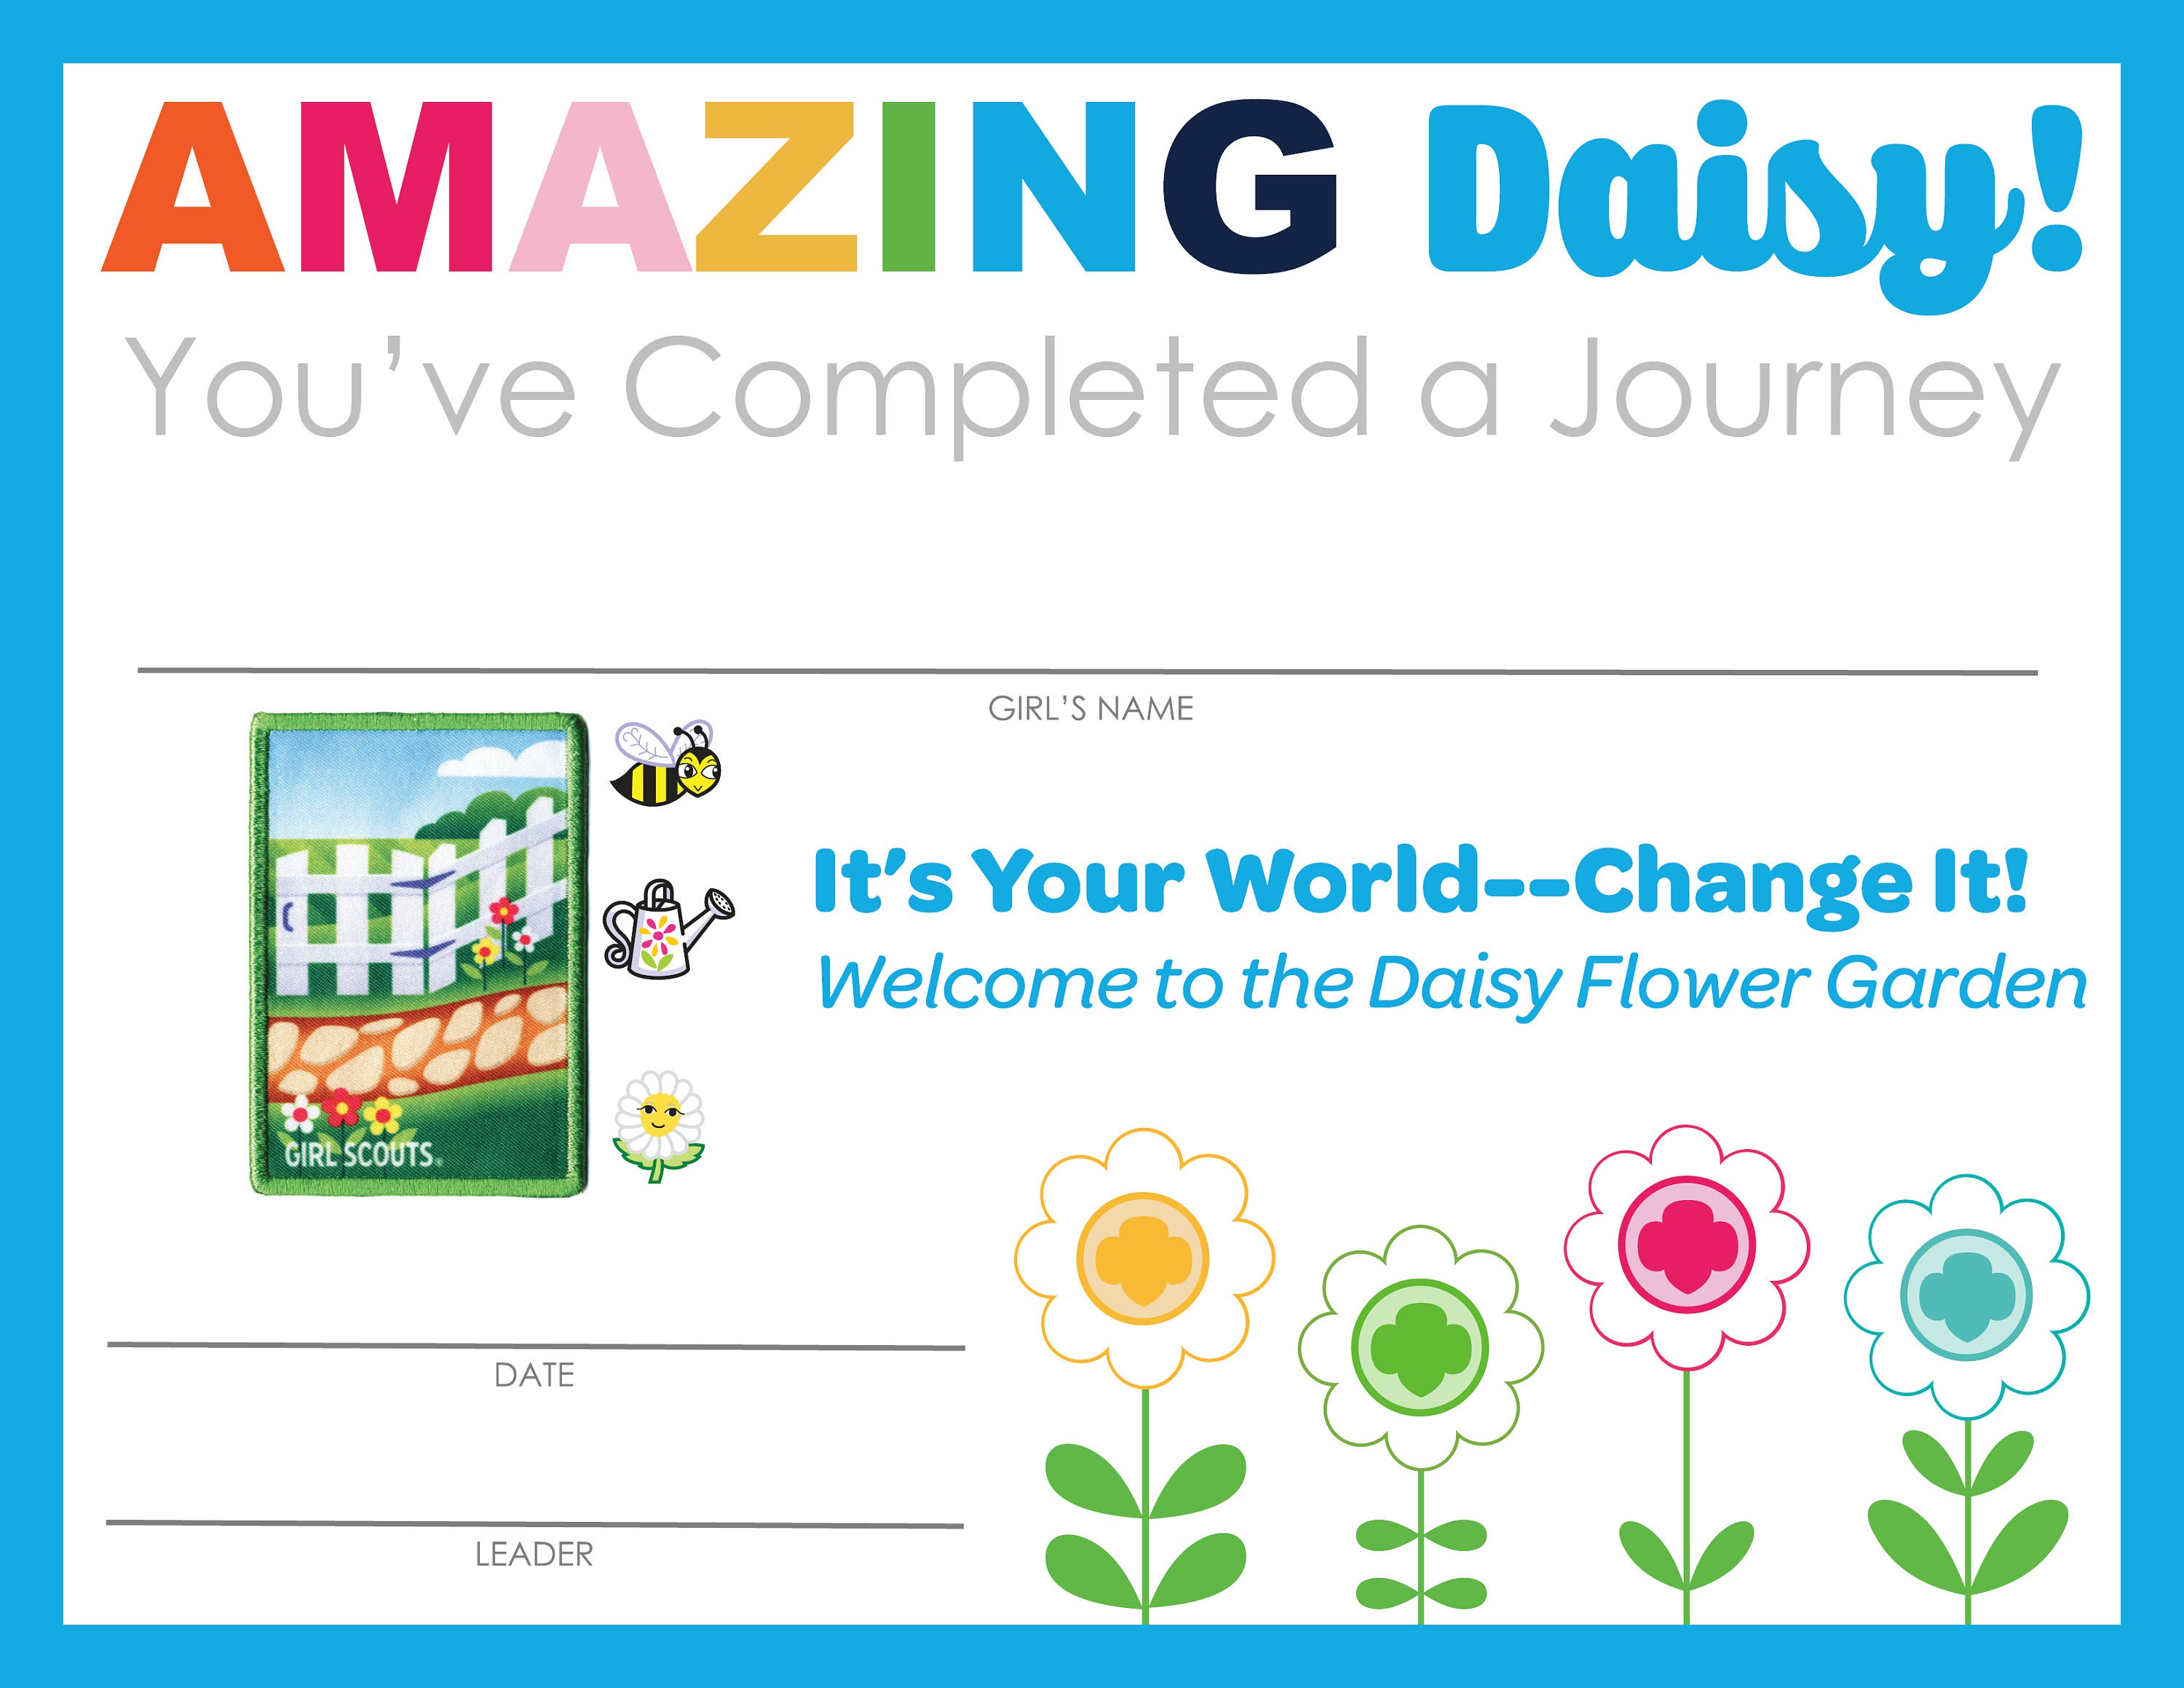 Invitation template girl scout daisy journey topsimages complete set of girl scout daisy badge journey completion etsy jpg 3000x2318 invitation template girl scout izmirmasajfo